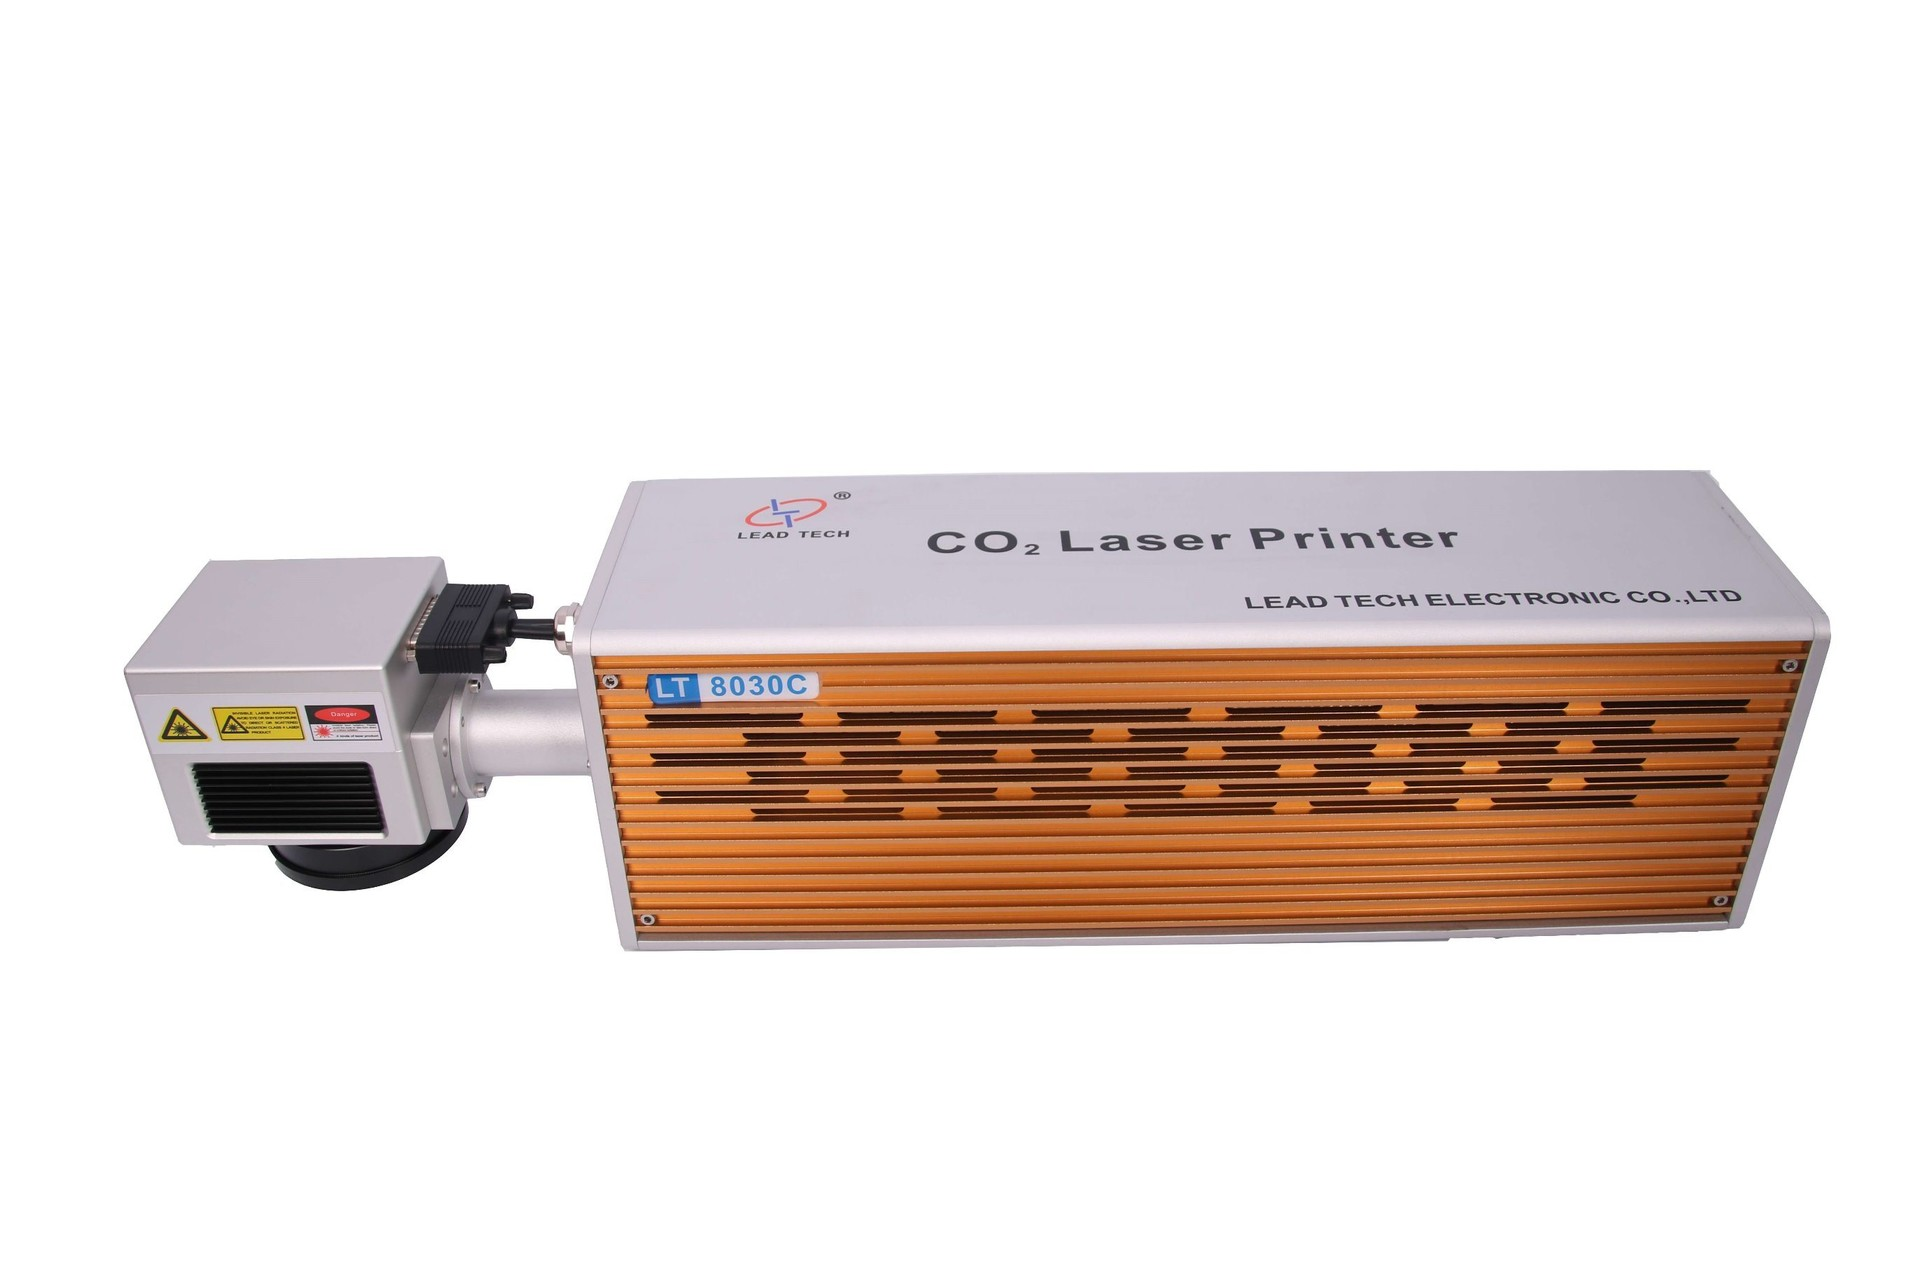 Lt8020c/Lt8030c CO2 20W/30W High Precision Laser Engraving Printer for Plate Silver Gold